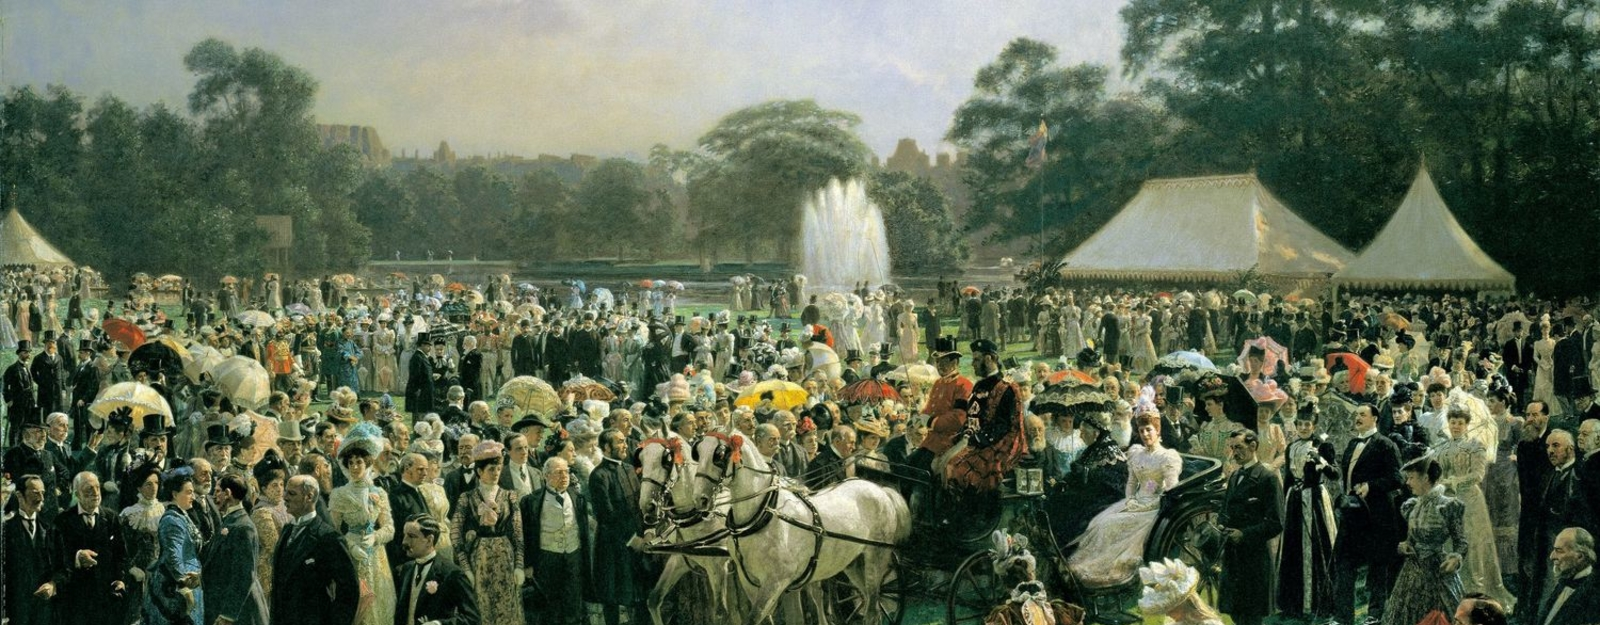 An oil painting of a garden party at Buckingham Palace. Queen Victoria and Alexandra, Princess of Wales are returning to the Palace in an open carriage pulled by two grey horses; in the garden, on the left, the Prince of Wales is conversing to a couple in